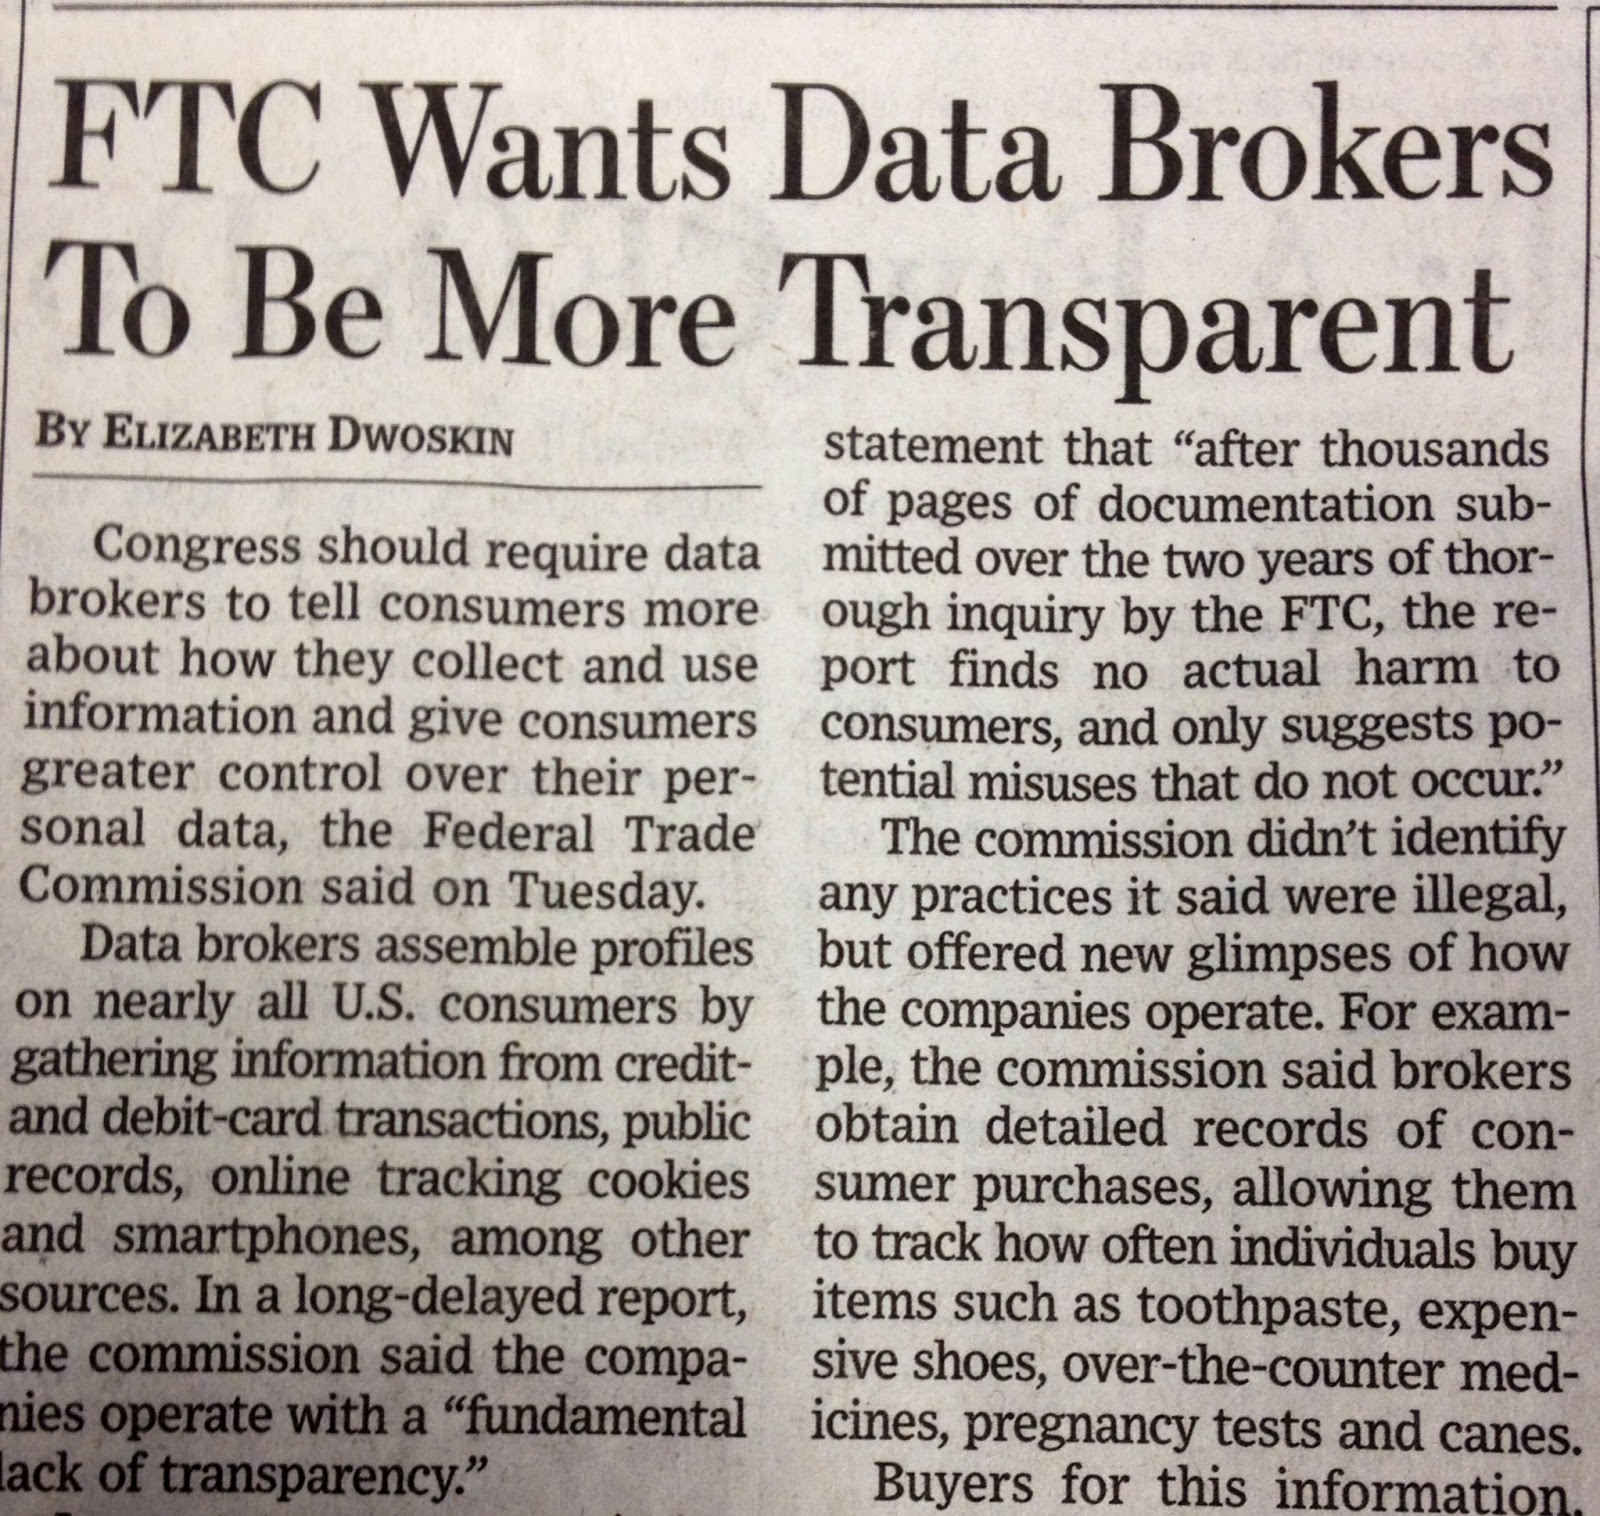 FTC Wants Data Brokers To Be More Transparent